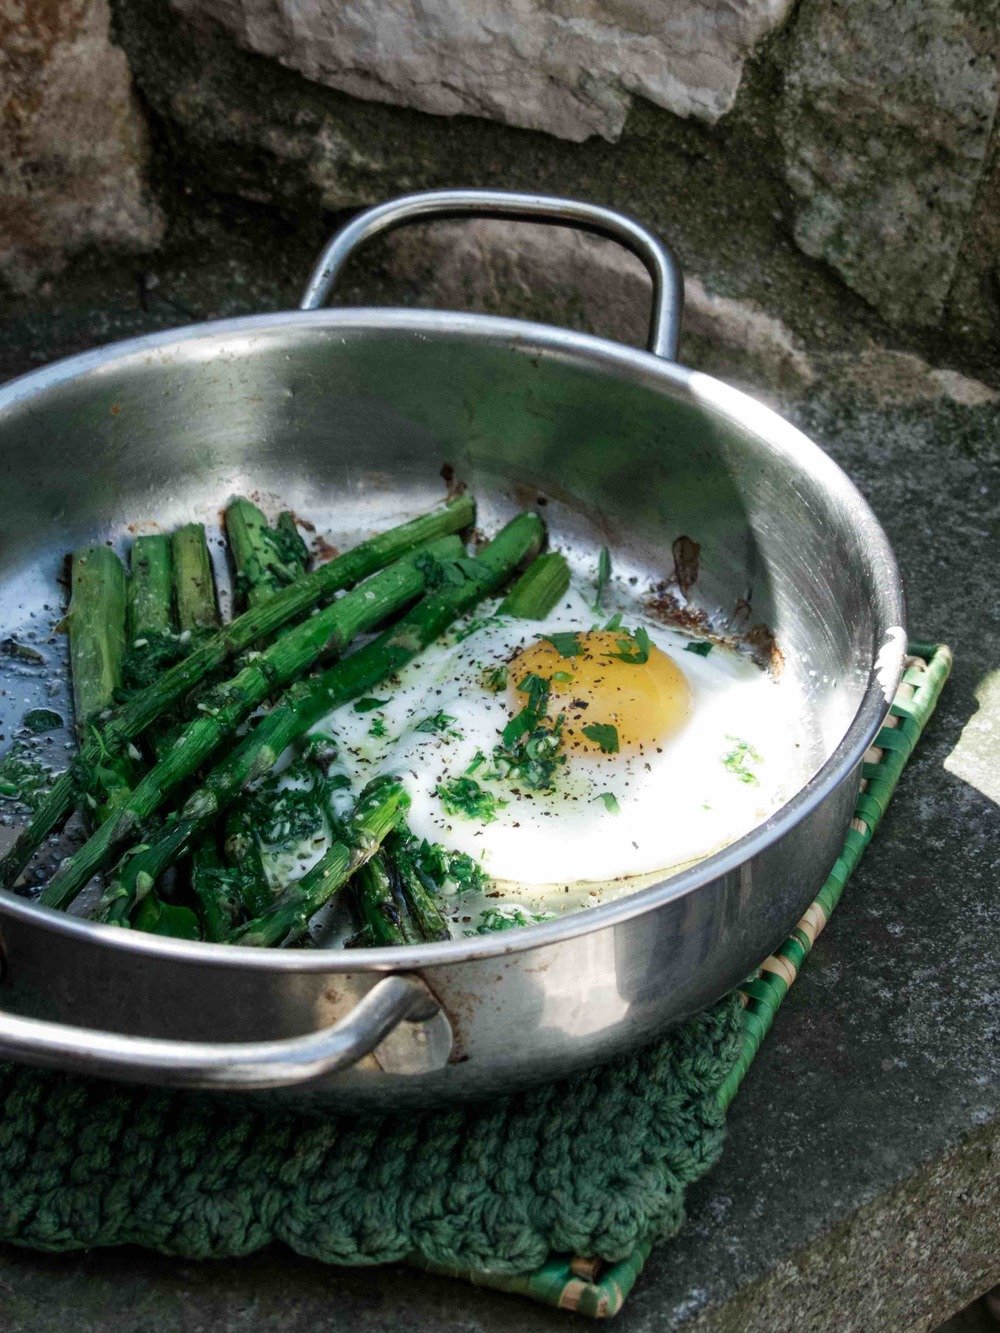 This dish is so easy to make.  Not much technique nor preparation is needed.  Season the asparagus with olive oil, salt and pepper.  Roast for about 15 minutes at 180-200ºC in oven and crack an egg to the baking dish and roast for a few more minutes before serving.